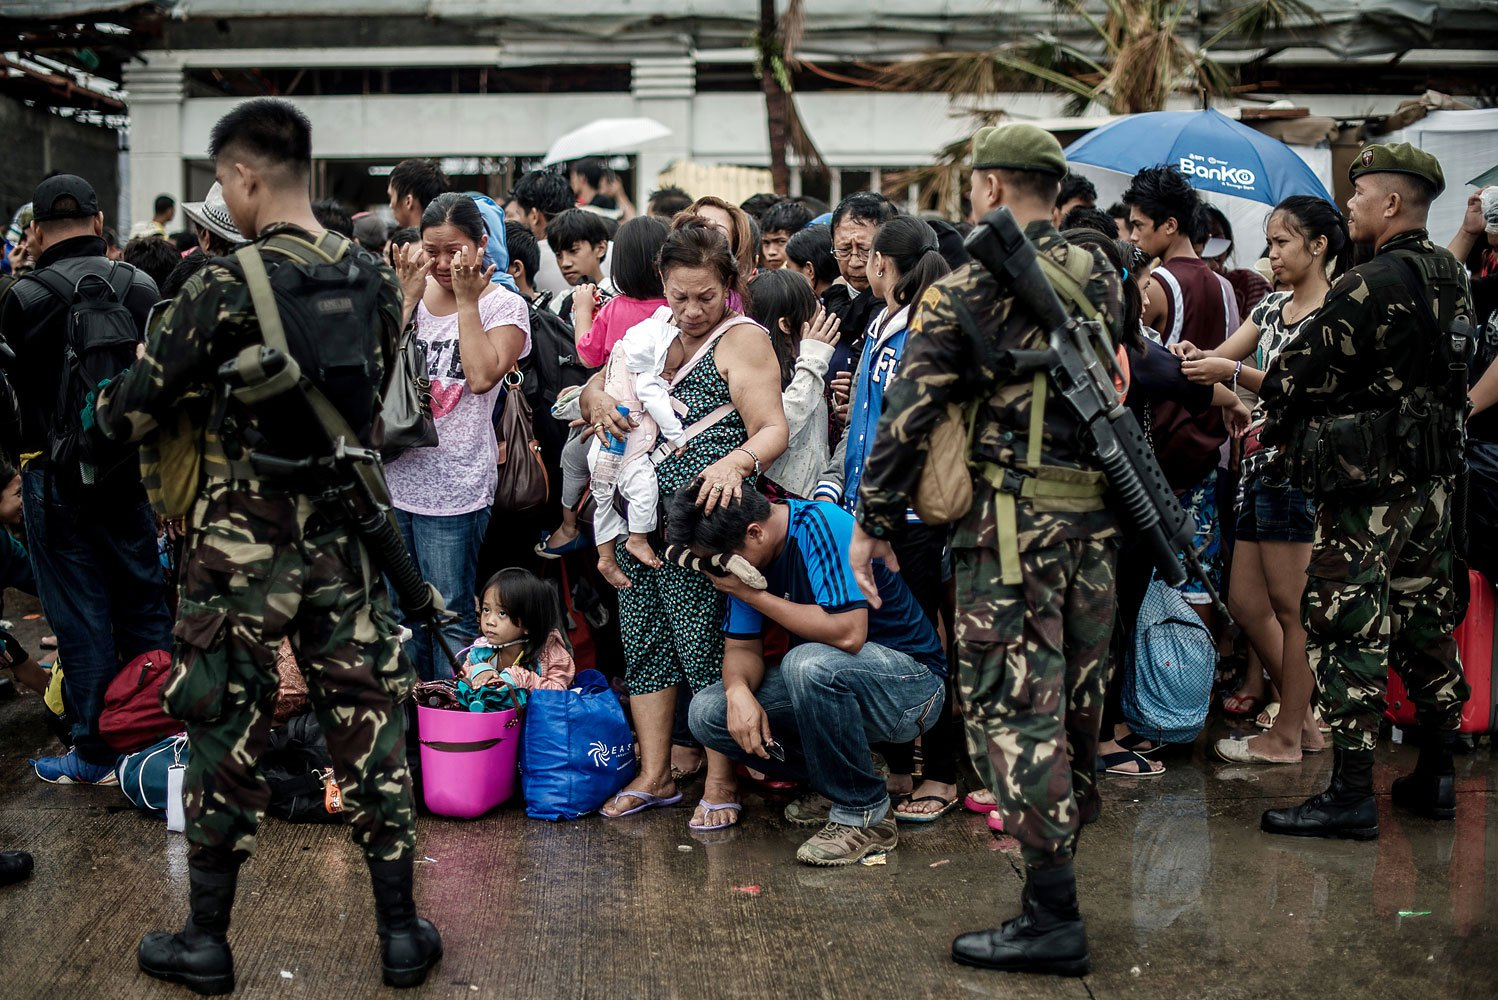 A woman holding a baby comforts a crying relative as a plane leaves the airport during evacuation operations in Tacloban, on the eastern island of Leyte on November 12, 2013 after Super Typhoon Haiyan swept over the Philippines.